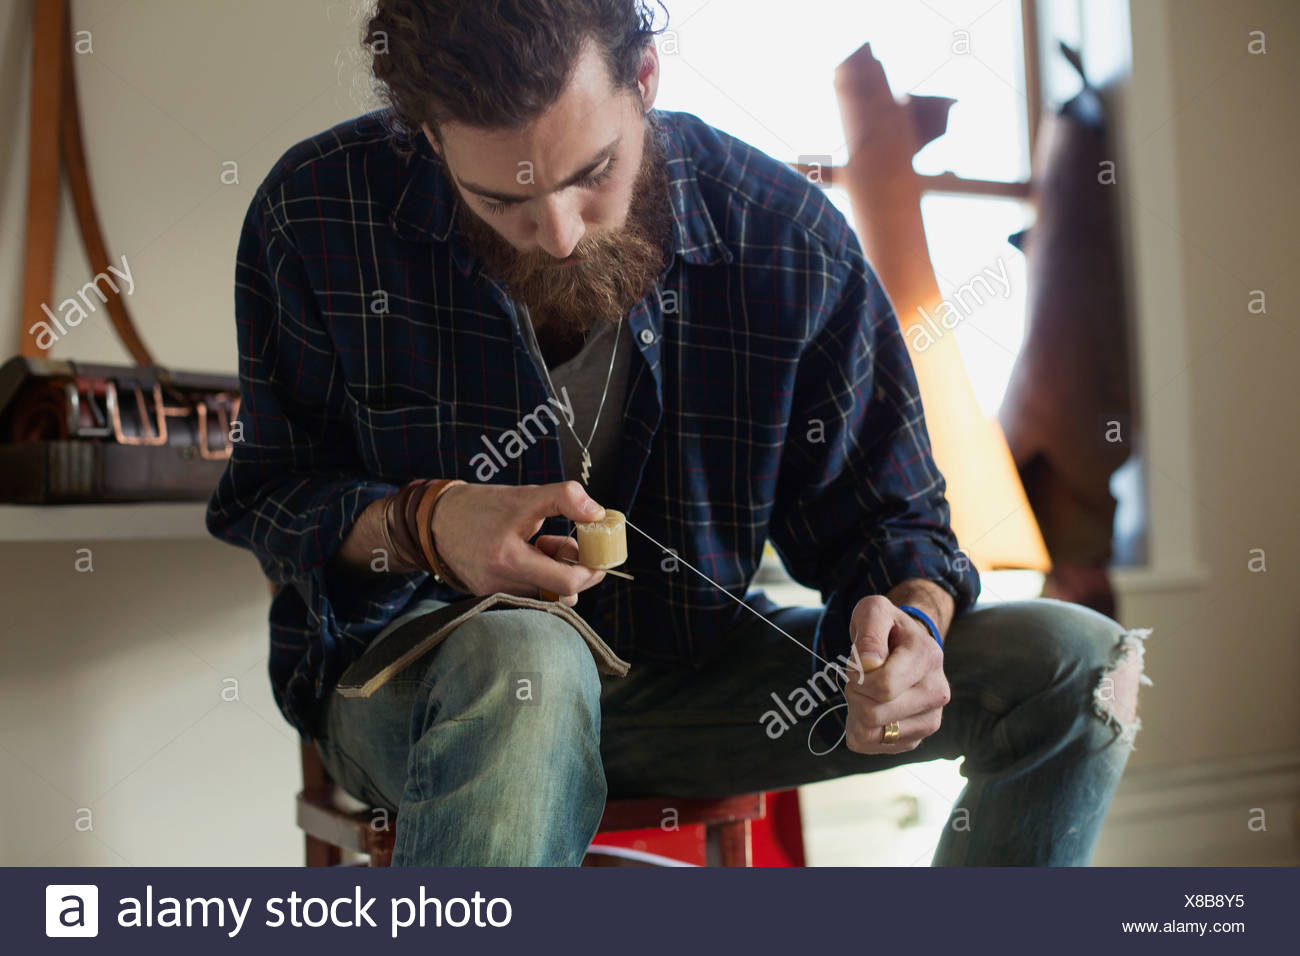 Young man with wax cube and string at workshop - Stock Image